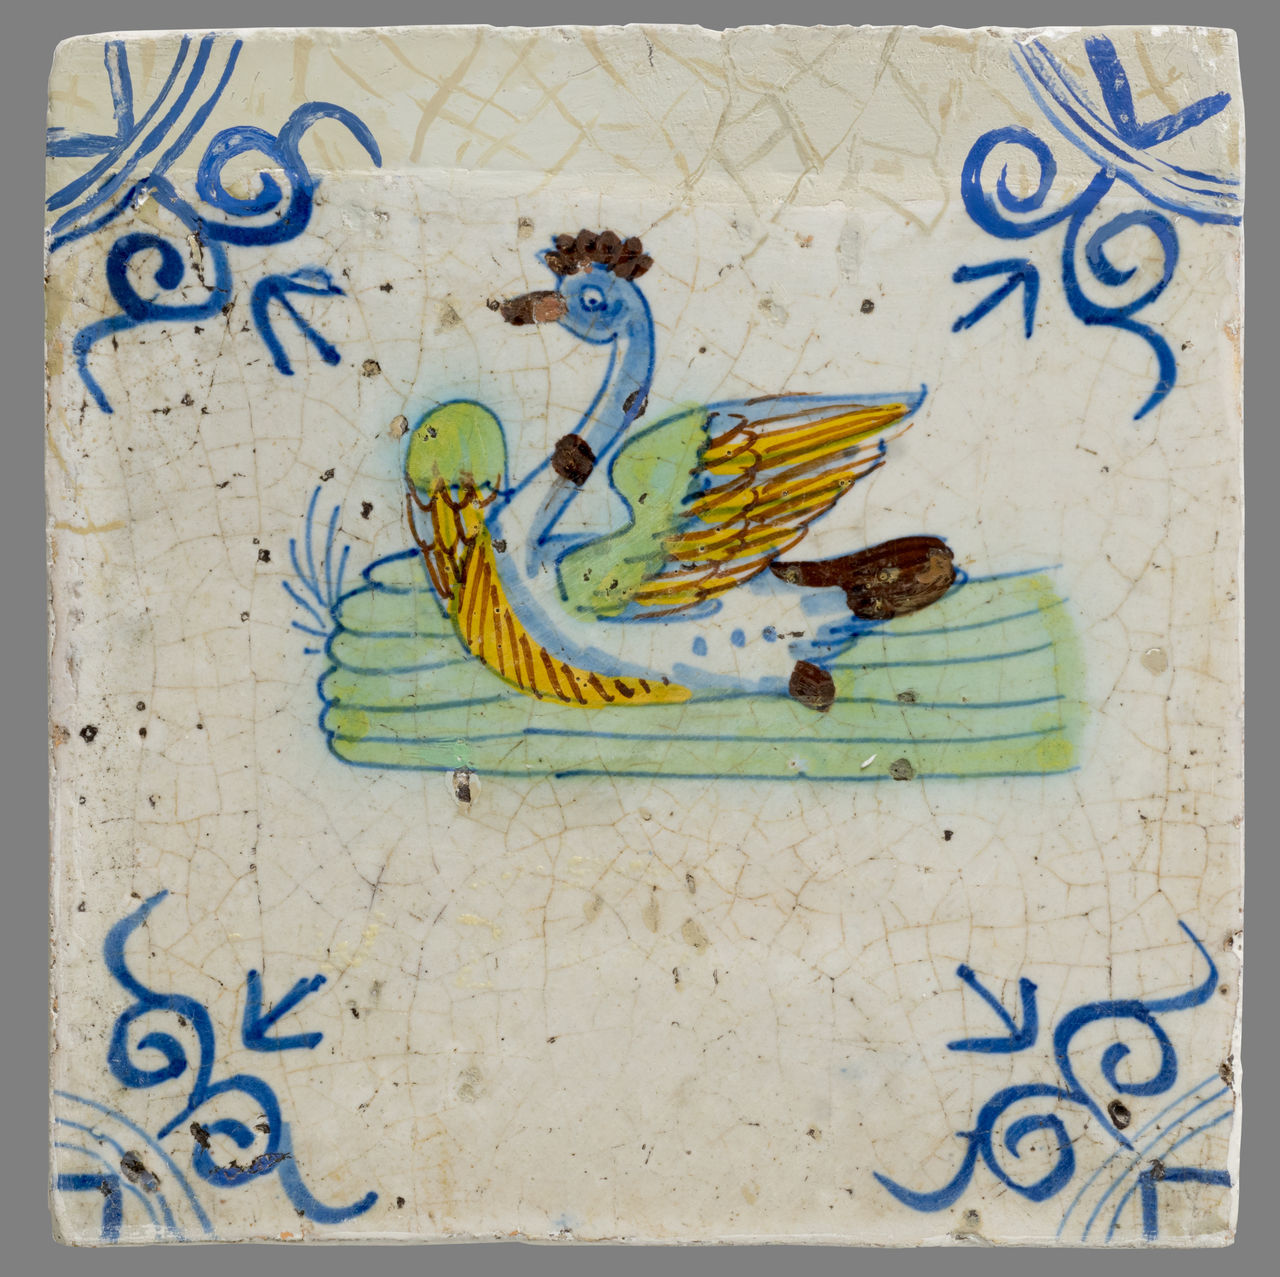 16th Century 17th Century 18th Century Animal Representation Animal Themes Bird Ceramics Multi Colored Netherlands Tile